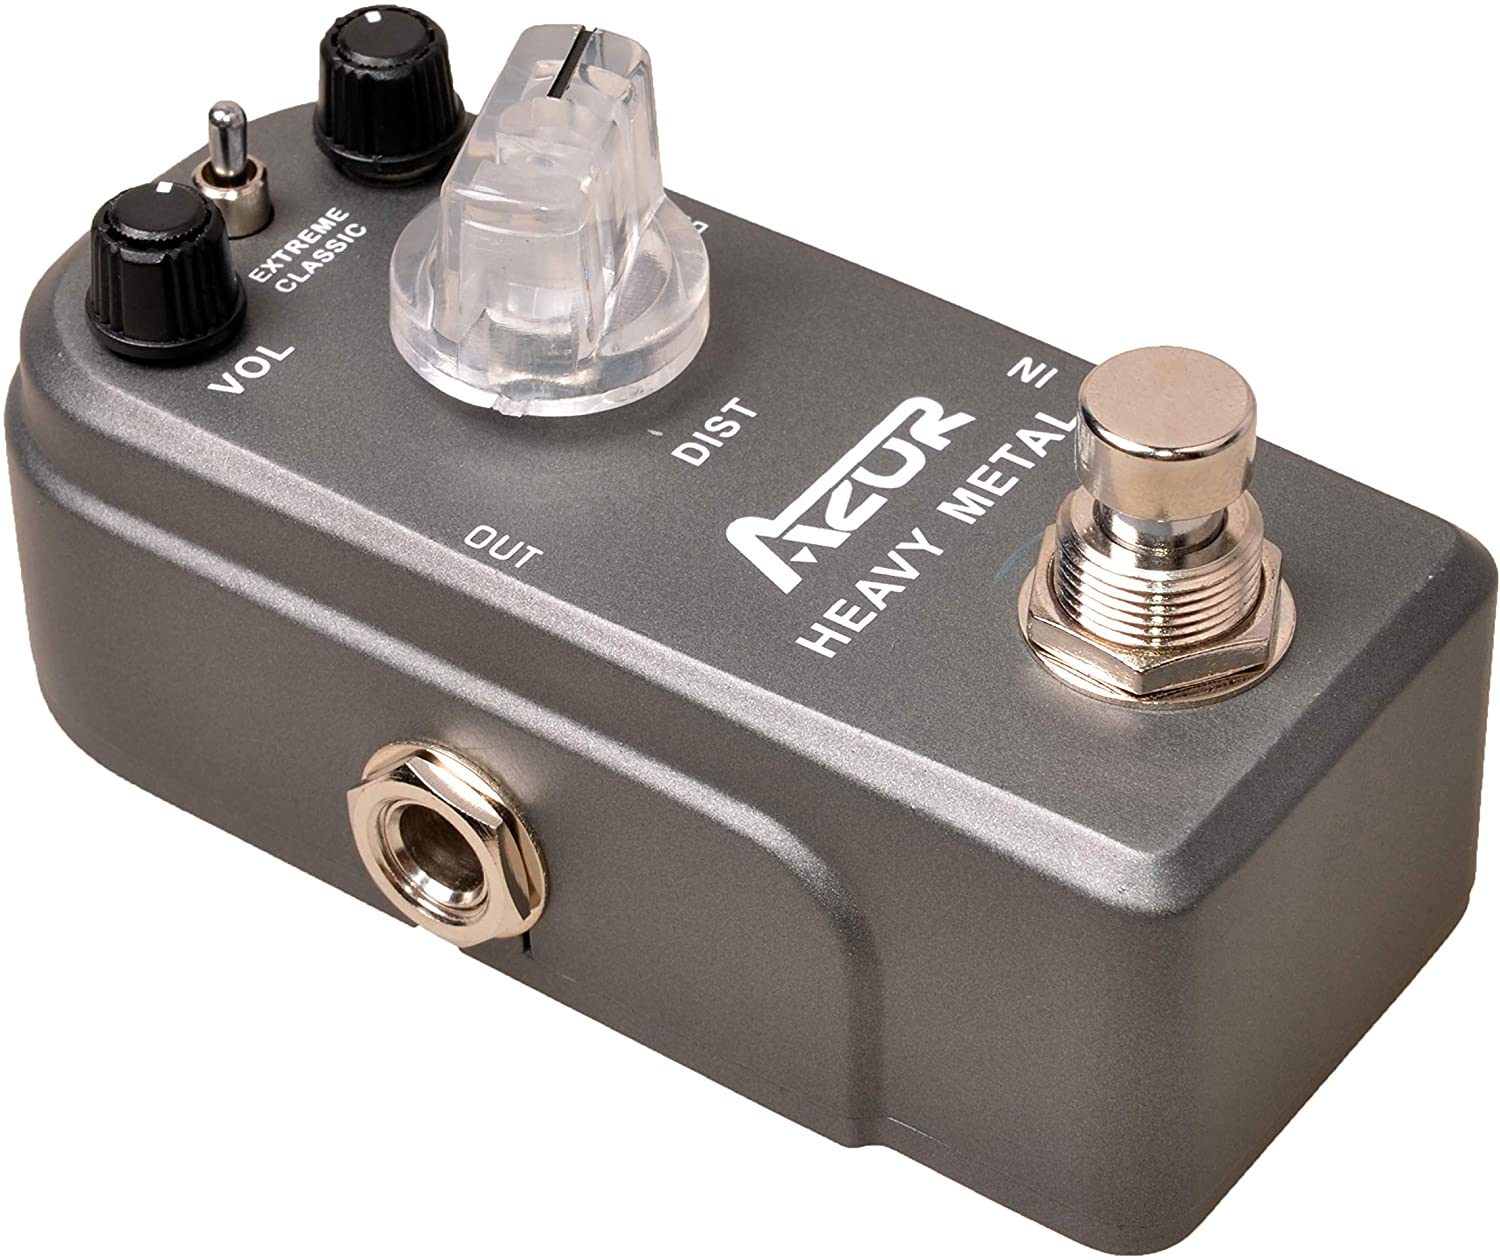 AZOR Heavy Metal Distortion Guitar Effects Pedal 3 Modes Controls with True Bypass Aluminium-alloy AP-321